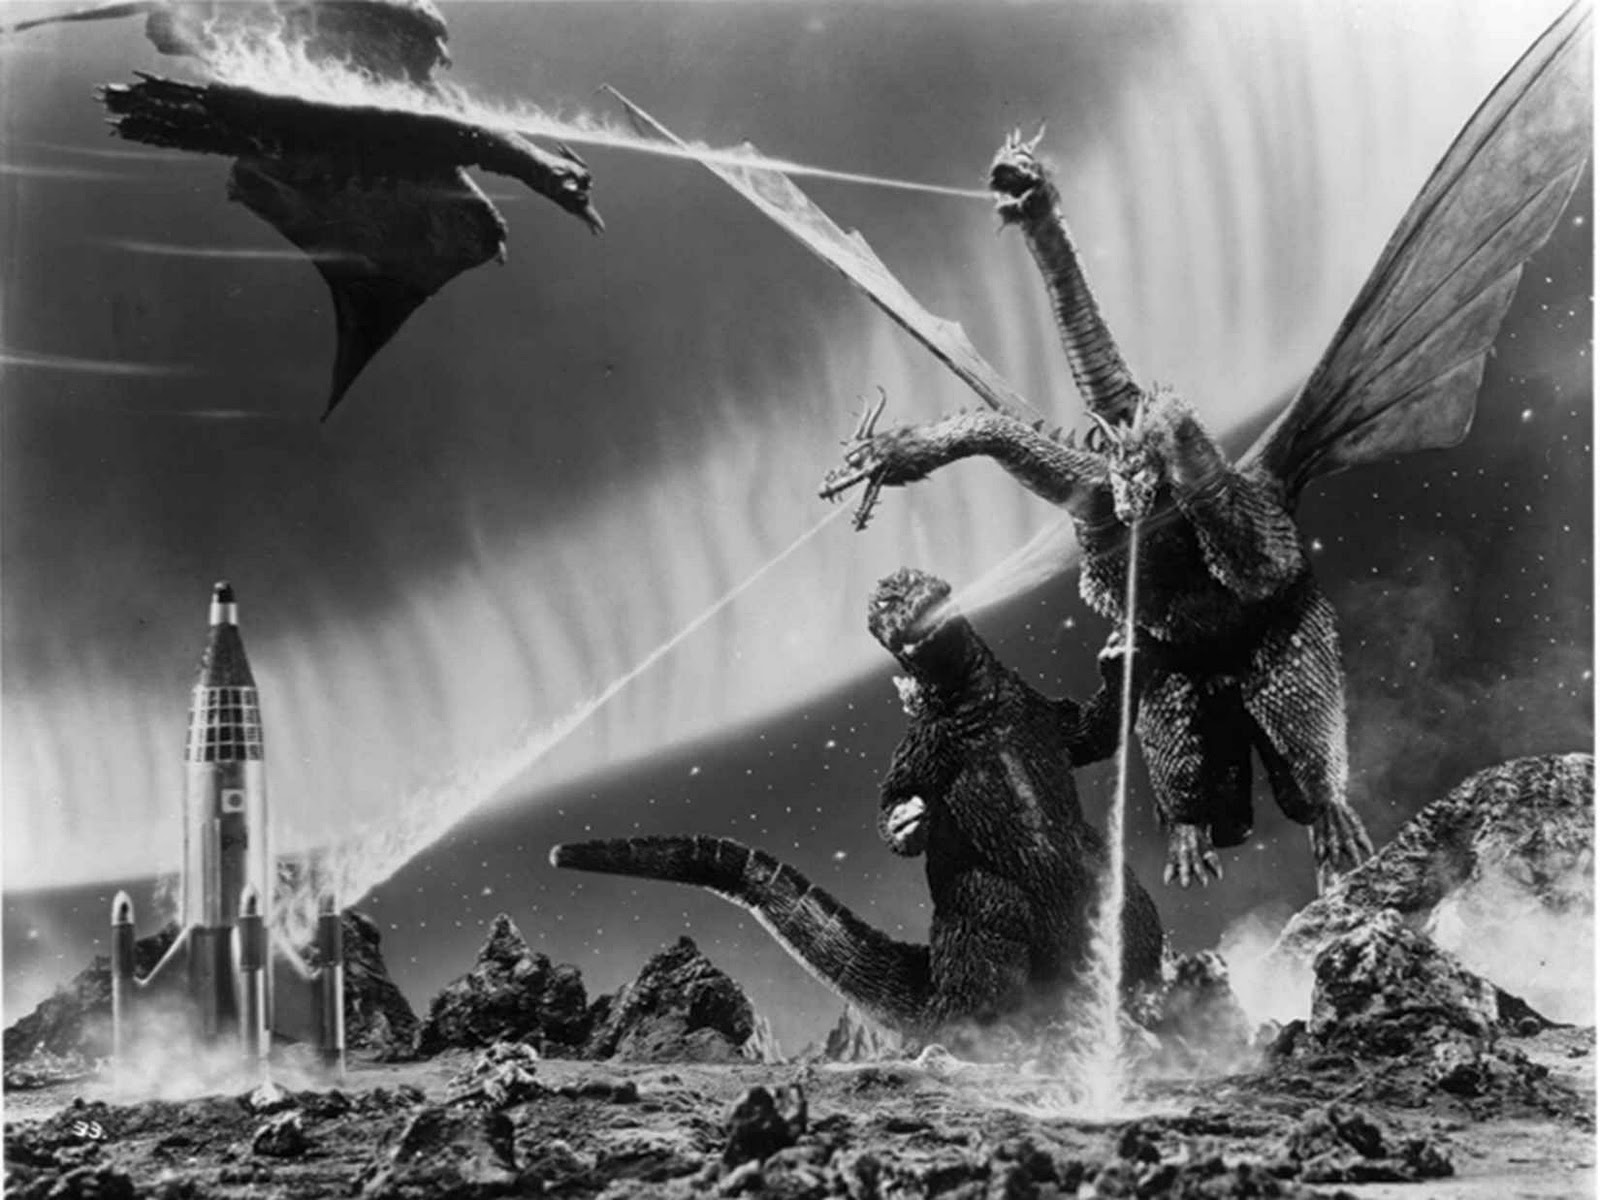 black and white science fiction movie scene